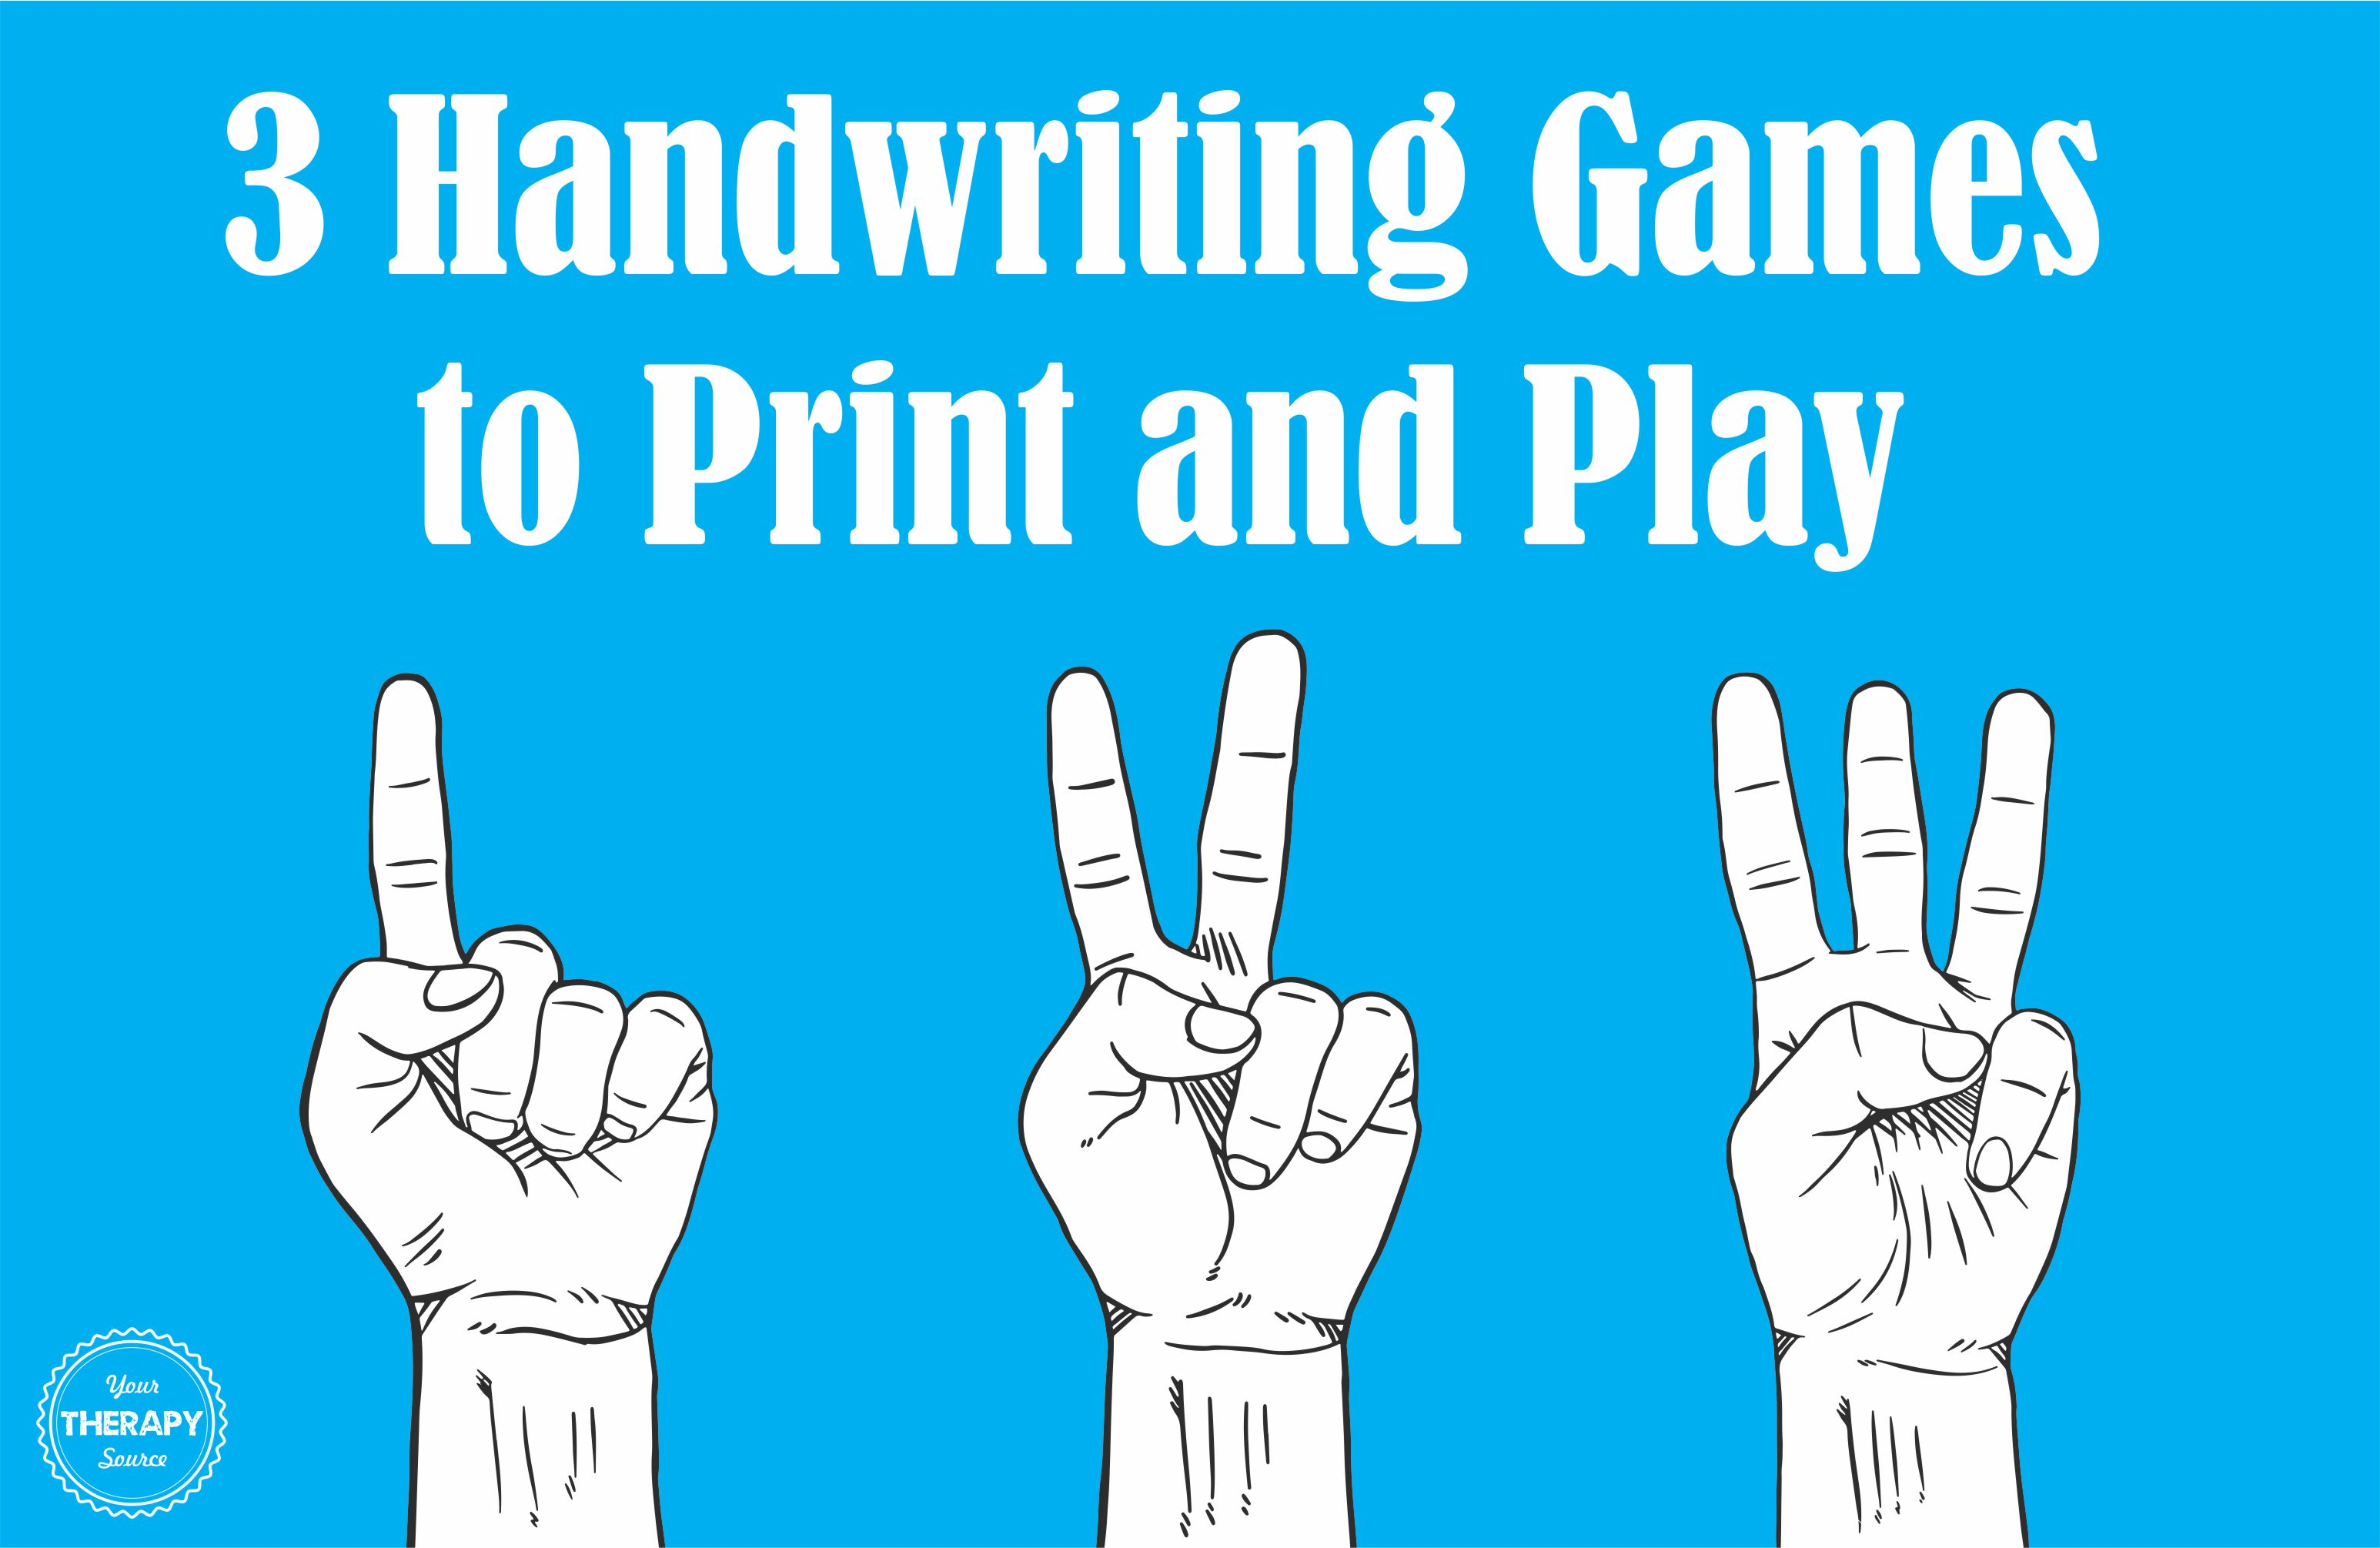 3 Handwriting Games To Print And Play